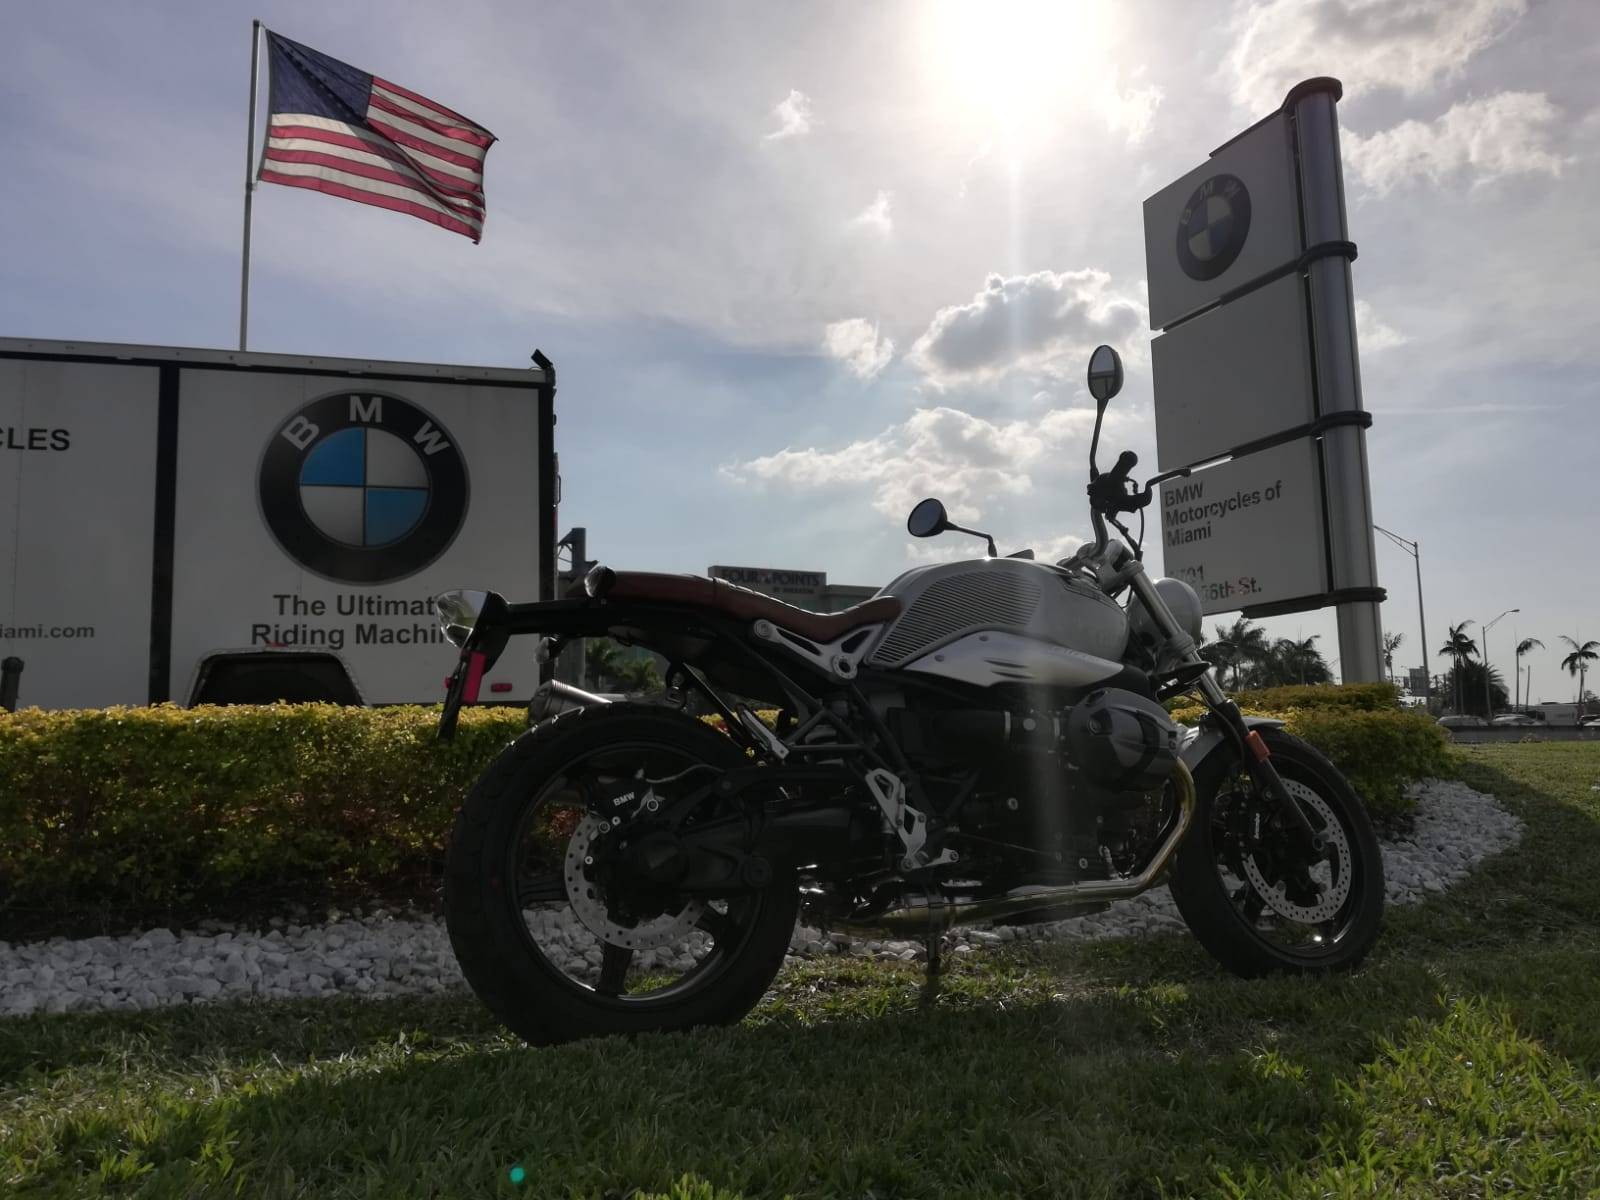 New 2019 BMW R nine T Scrambler for sale, BMW Scrambler for sale, BMW Motorcycle Scrambler, Scrambler, BMW Motorcycles of Miami, Motorcycles of Miami, Motorcycles Miami, New Motorcycles, Used Motorcycles, pre-owned. #BMWMotorcyclesOfMiami #MotorcyclesOfMiami. - Photo 13